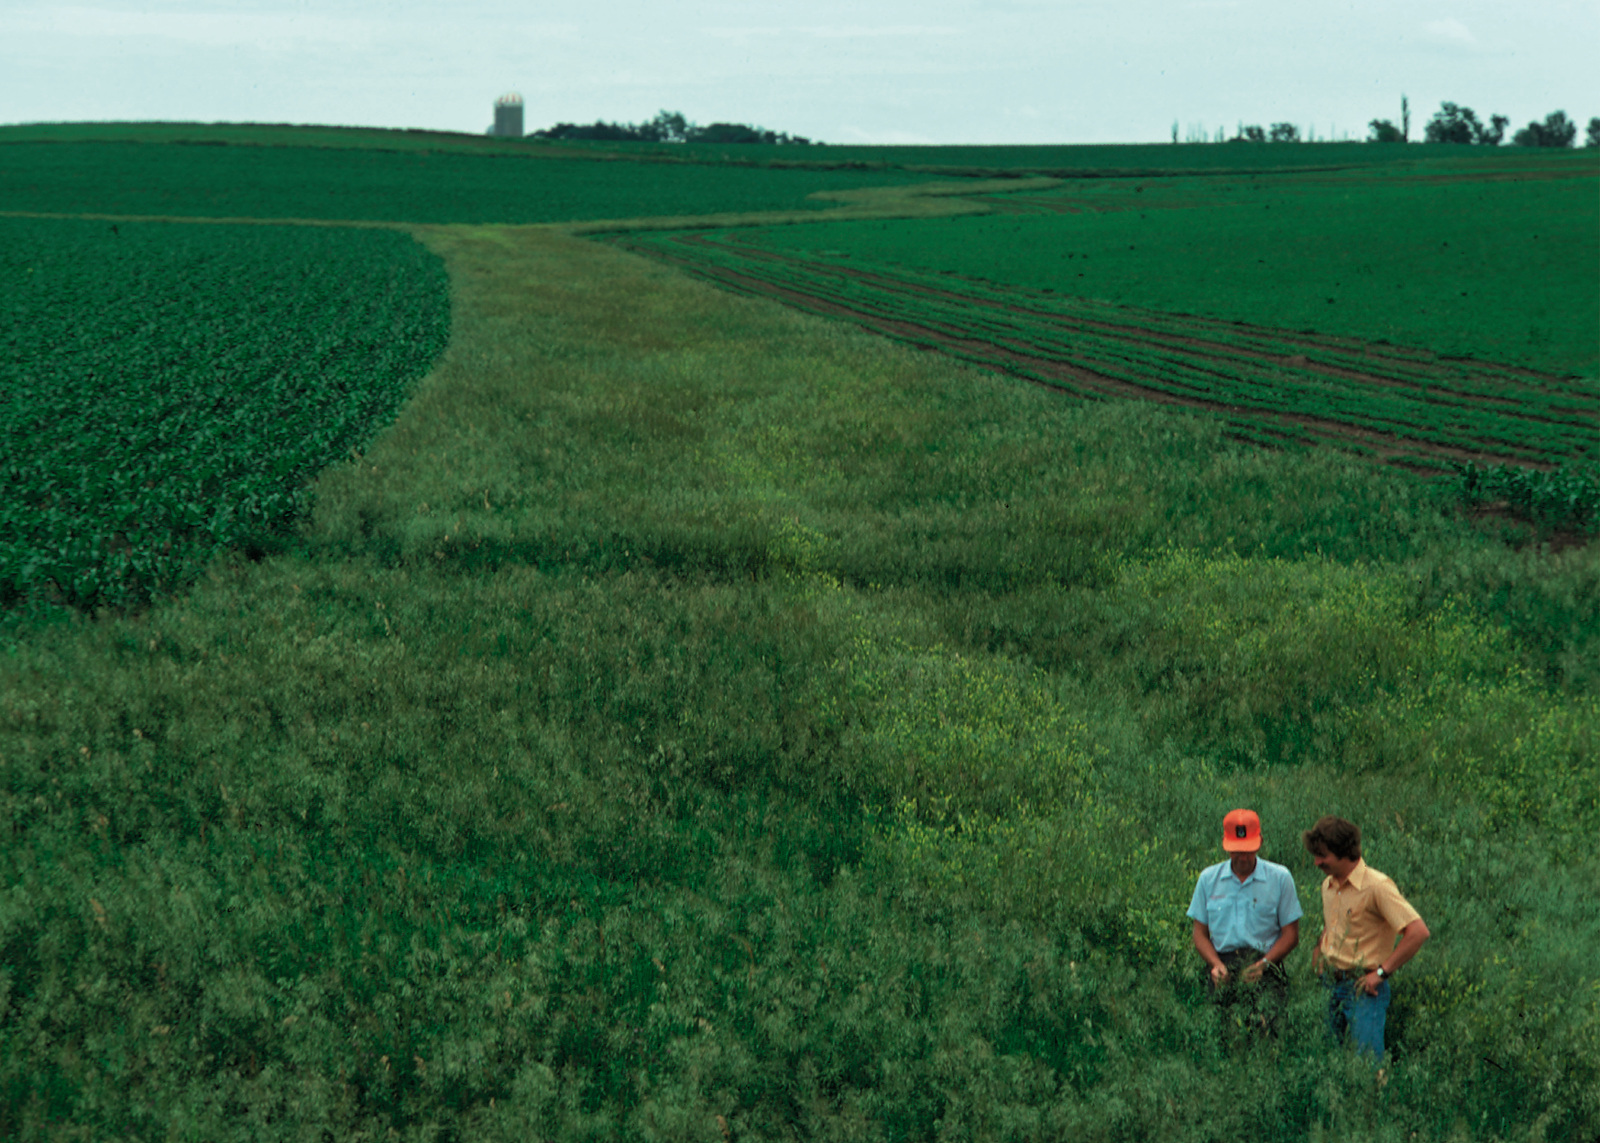 Helping to cover the cost of erosion control practices